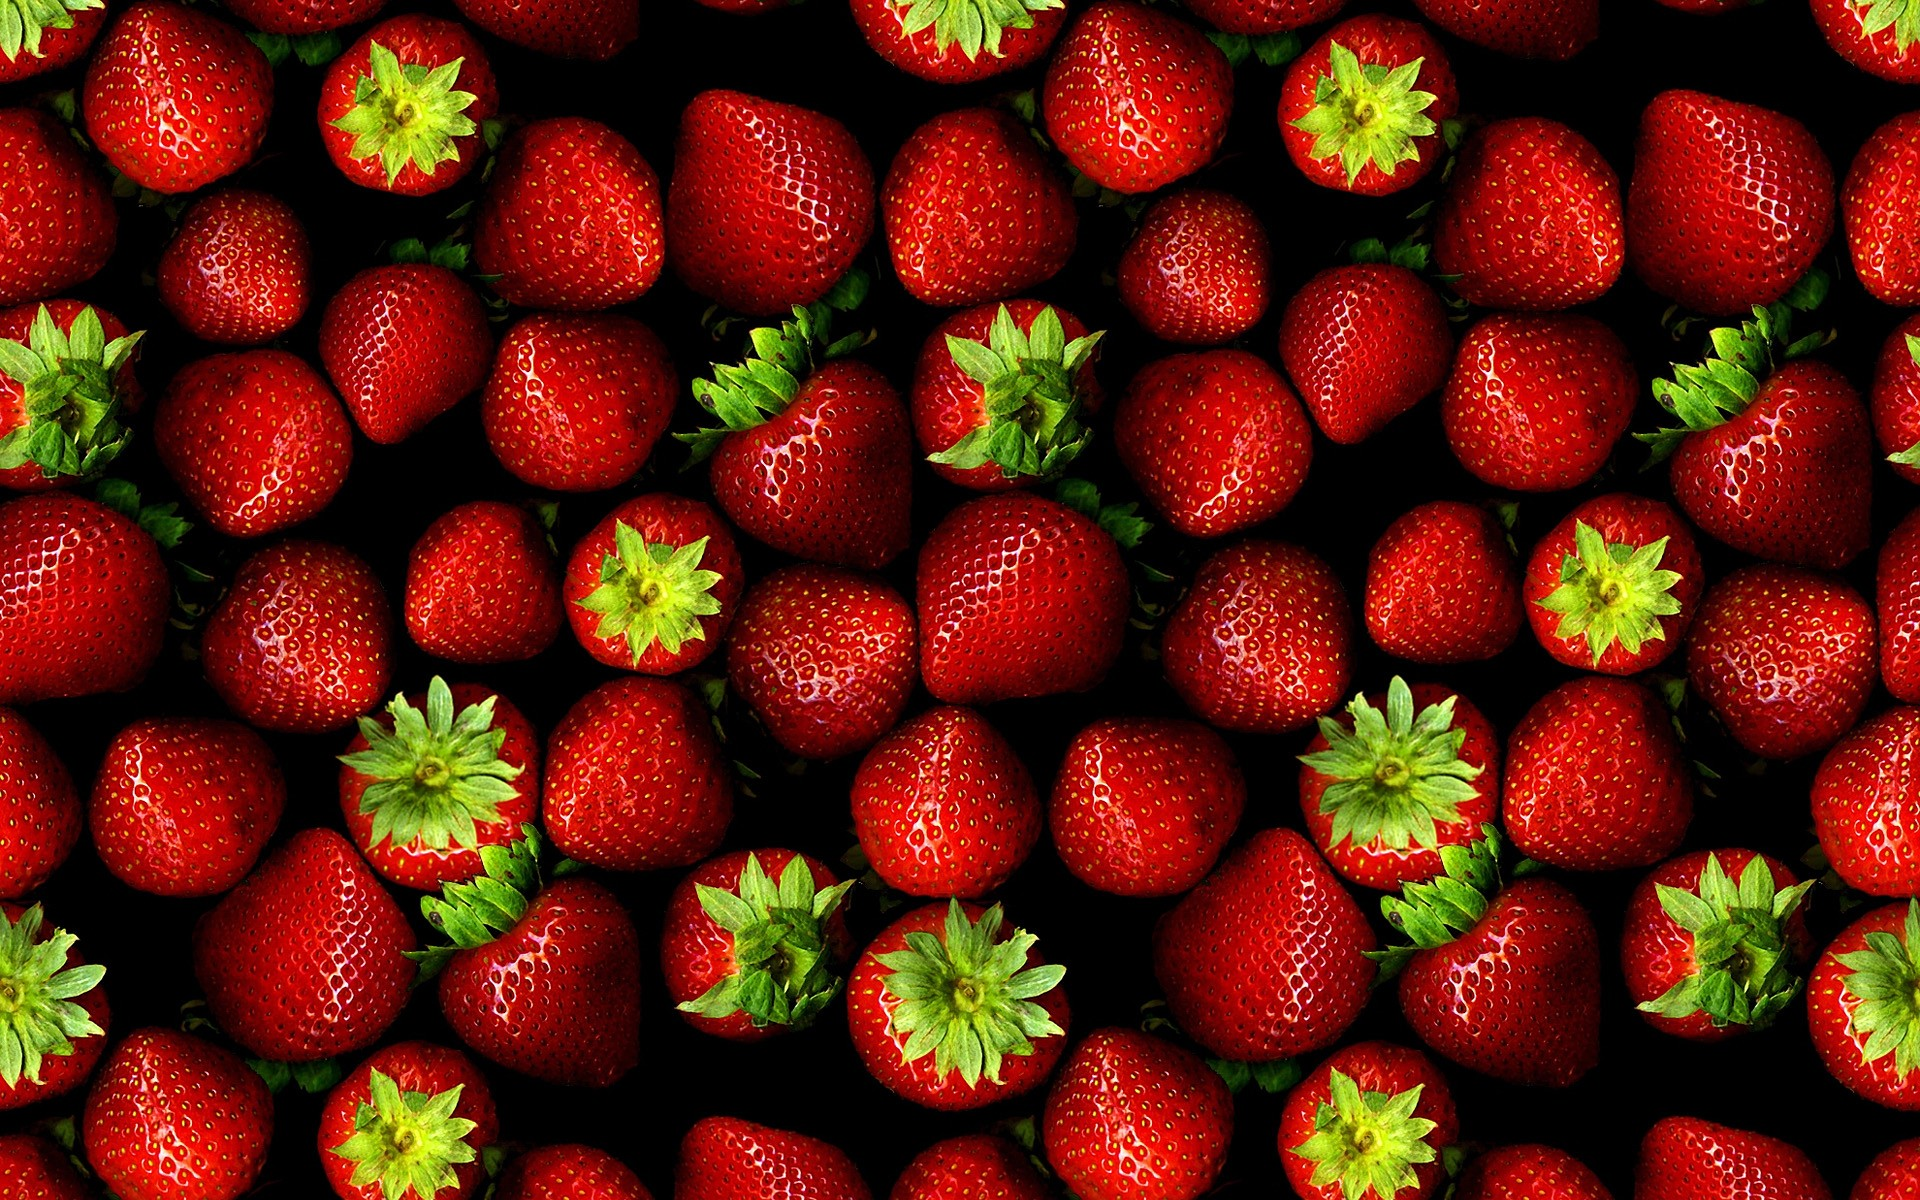 All the fruits wallpaper - 15 Outstanding Hd Fruit Wallpapers